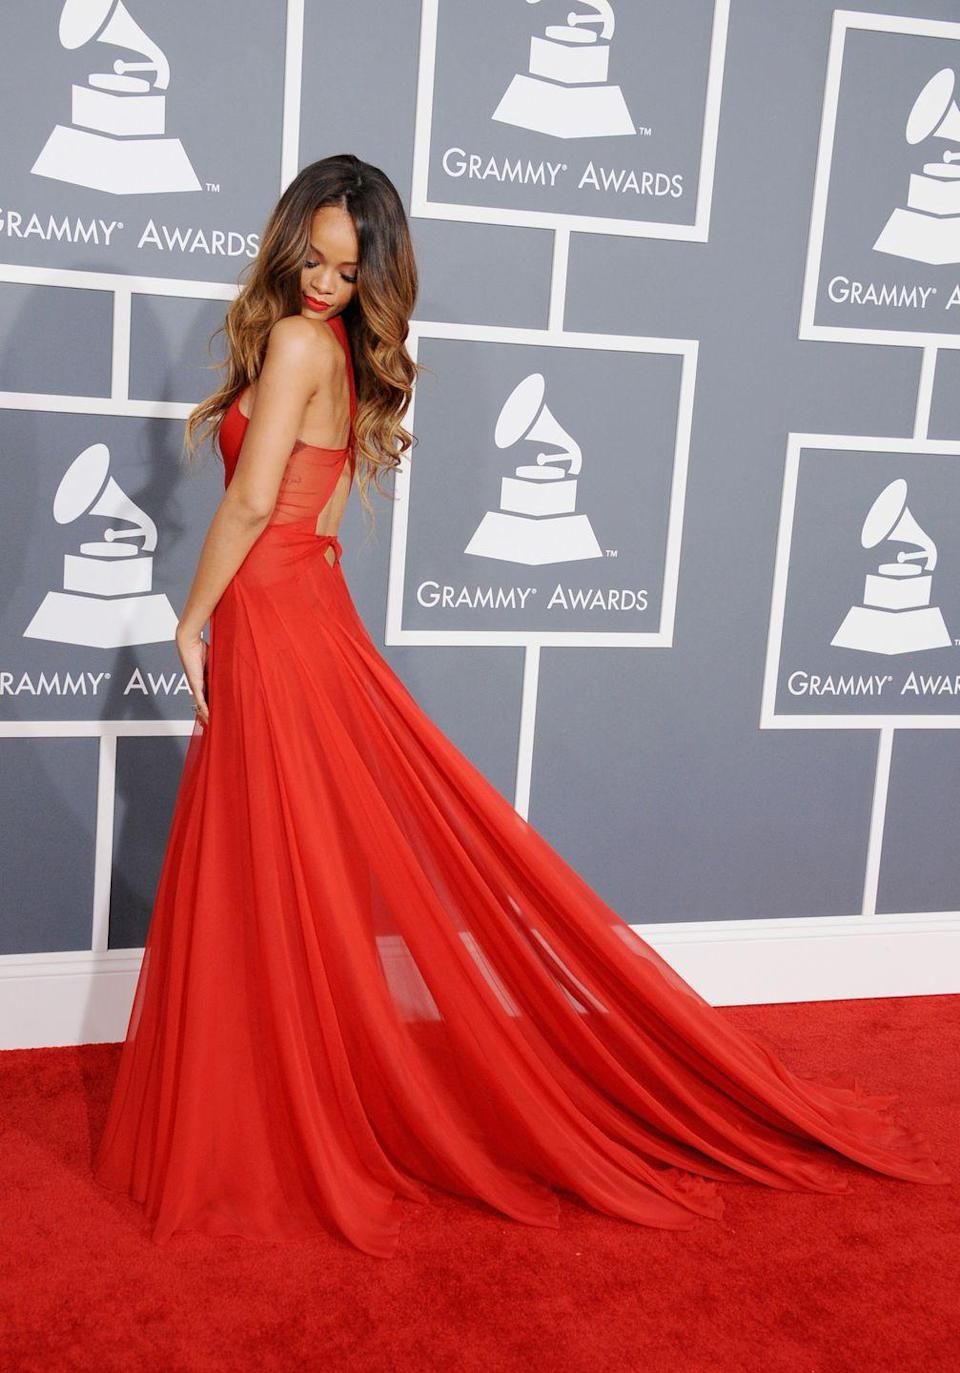 <p>One of Rihanna's earlier memorable red carpet moments - and, arguably, one of her most romantic - was the sheer red chiffon Azzedine Alaia gown she wore to the 2013 Grammys. With her hair in cascading curls and a matching red lip, the look was feminine, sexy and show-stopping.</p>